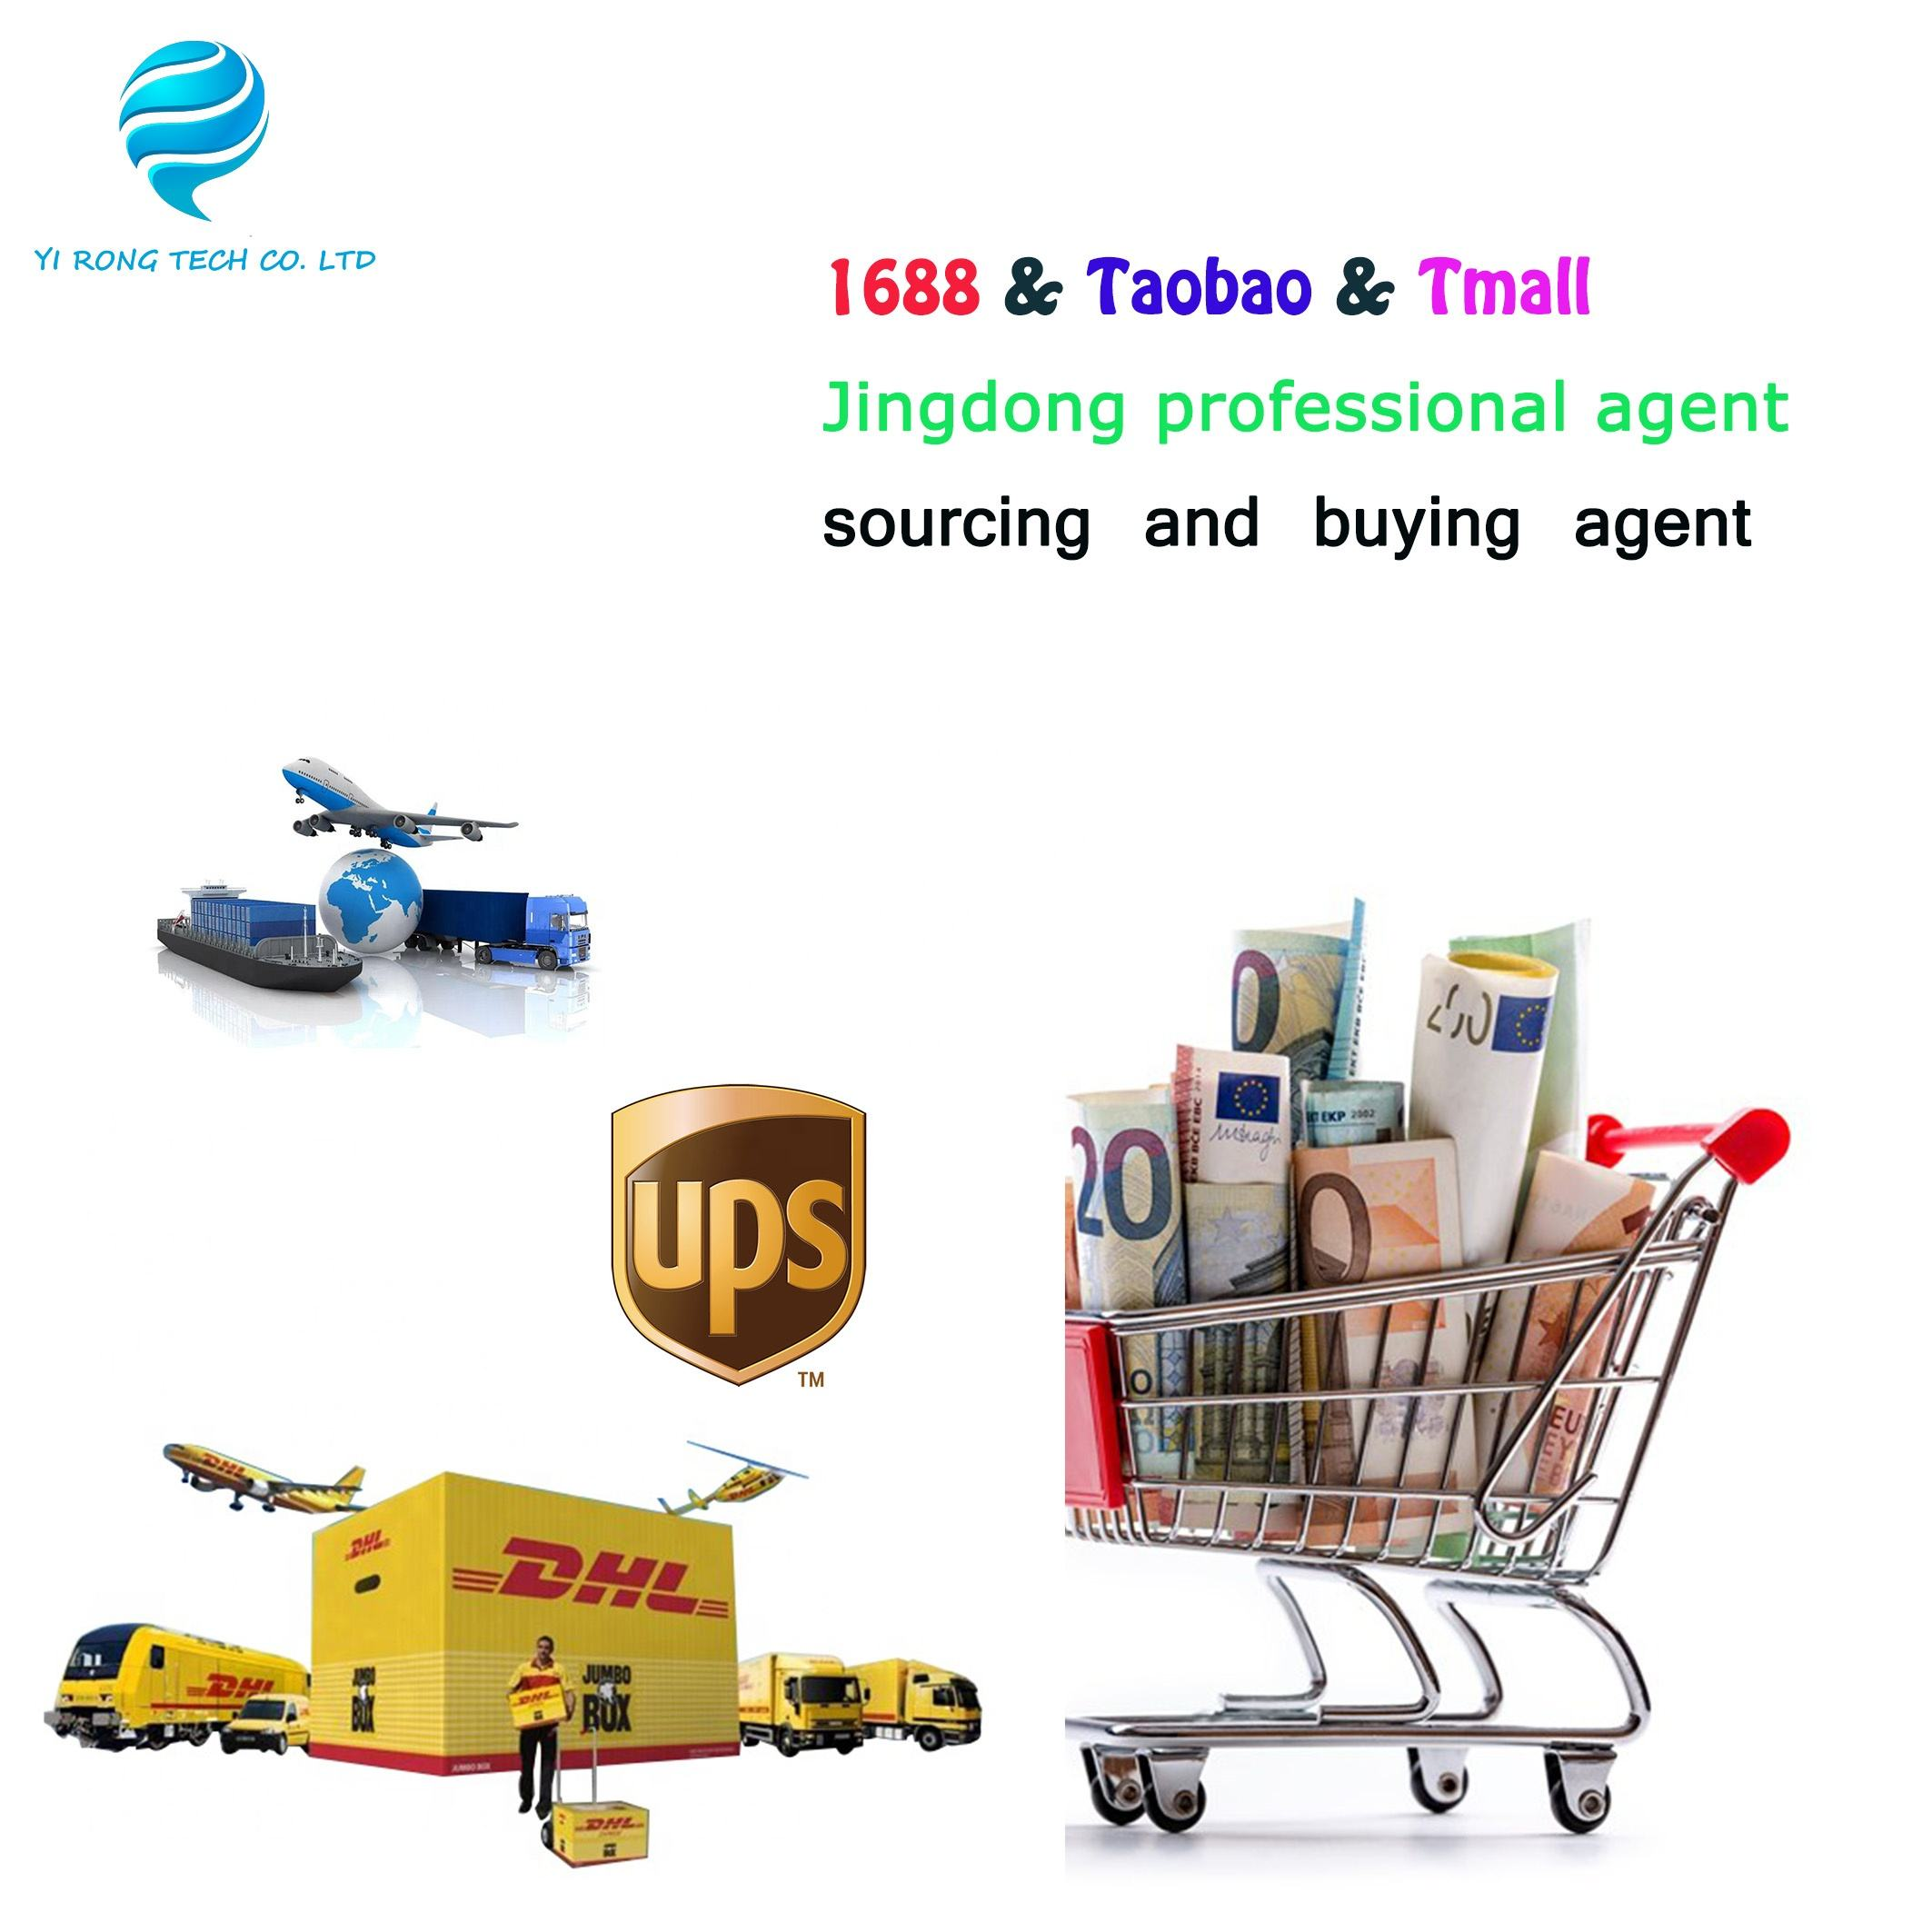 Shenzhen Yiwu USA taobao agent sourcing-agent, taobao agent paypal